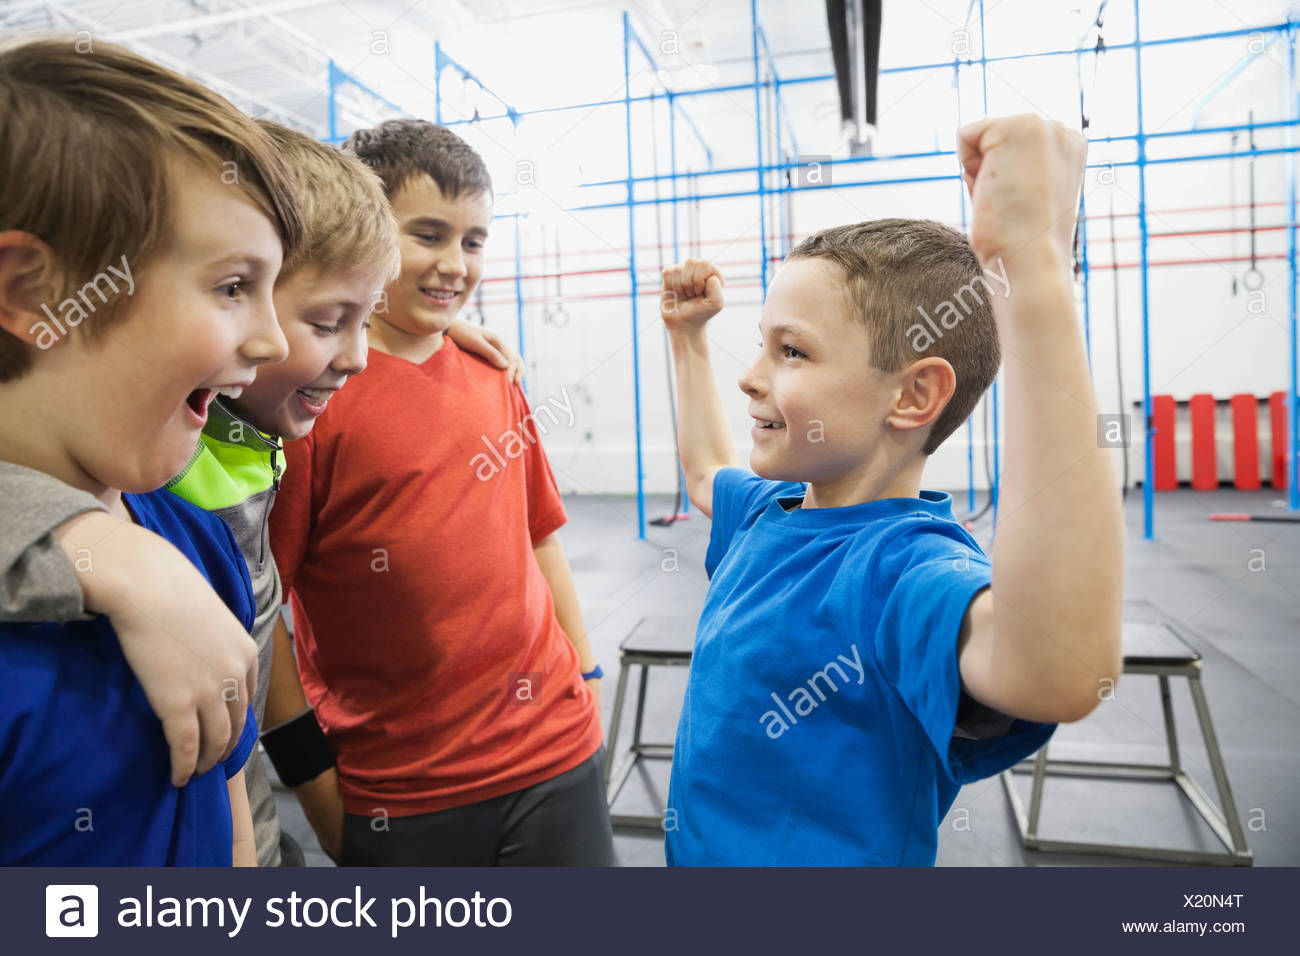 Boy showing muscles to friends in gym - Stock Image